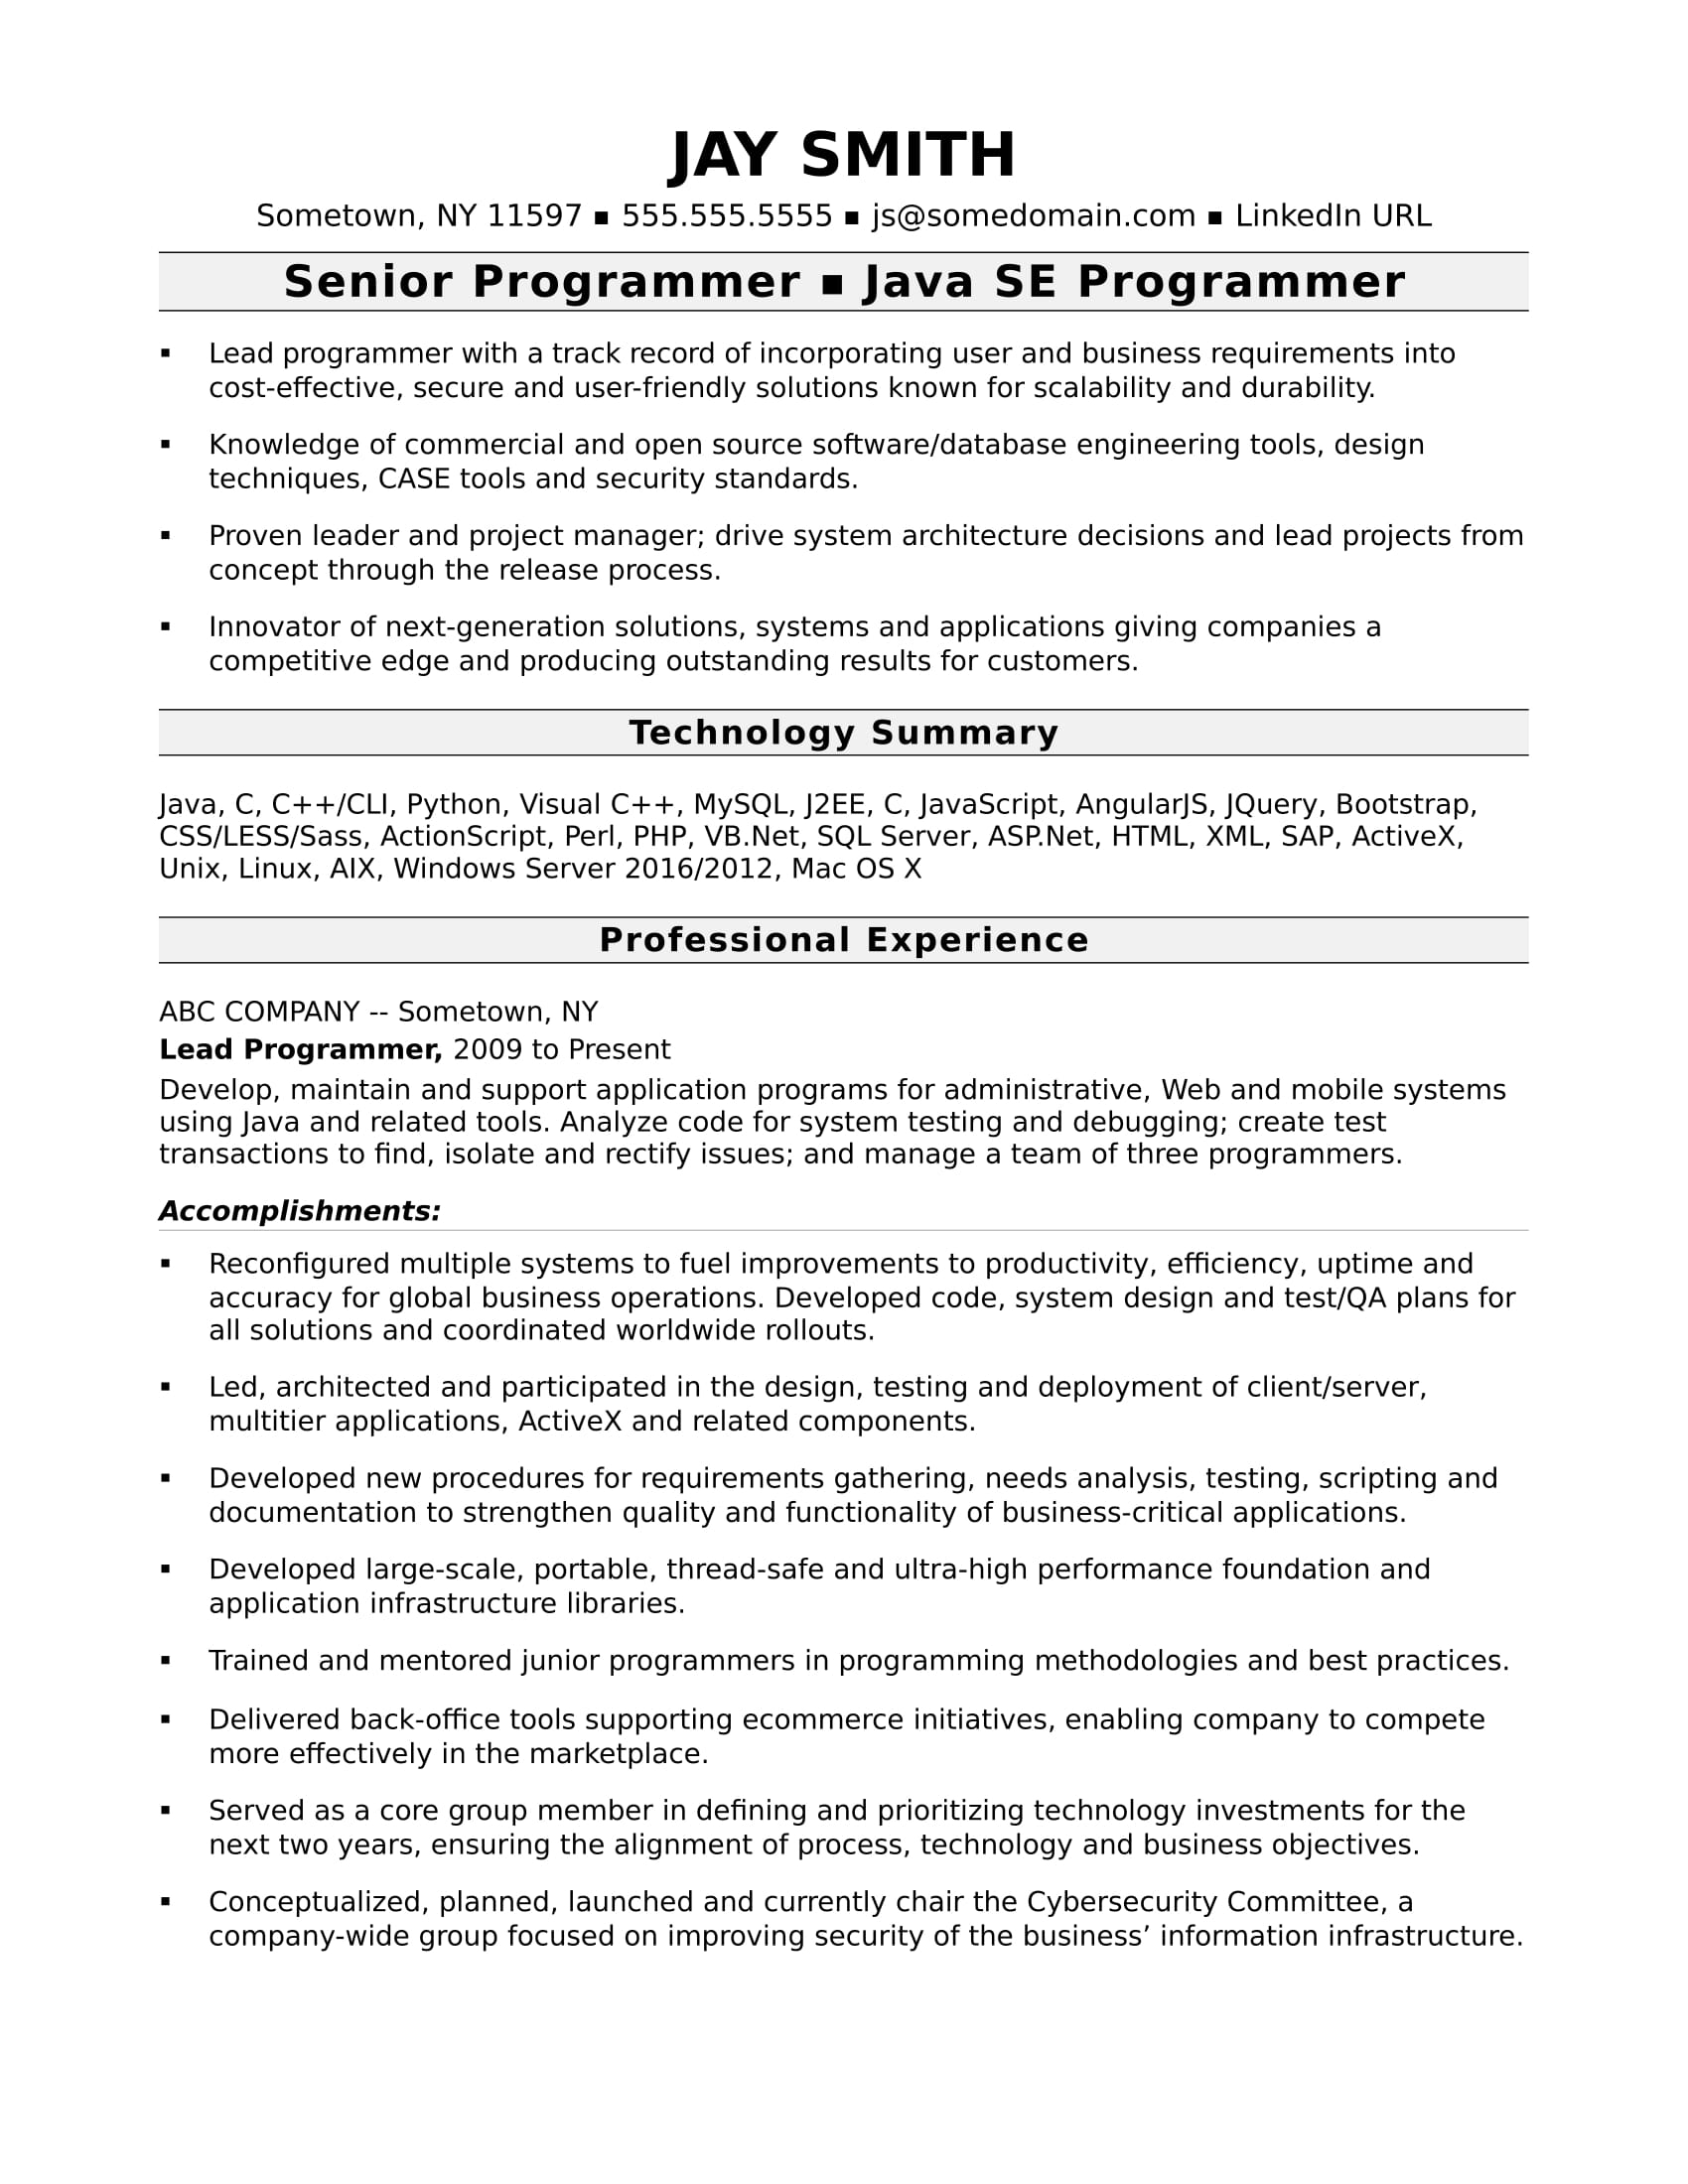 Sample Resume For An Experienced Computer Programmer  What Is A Summary For A Resume